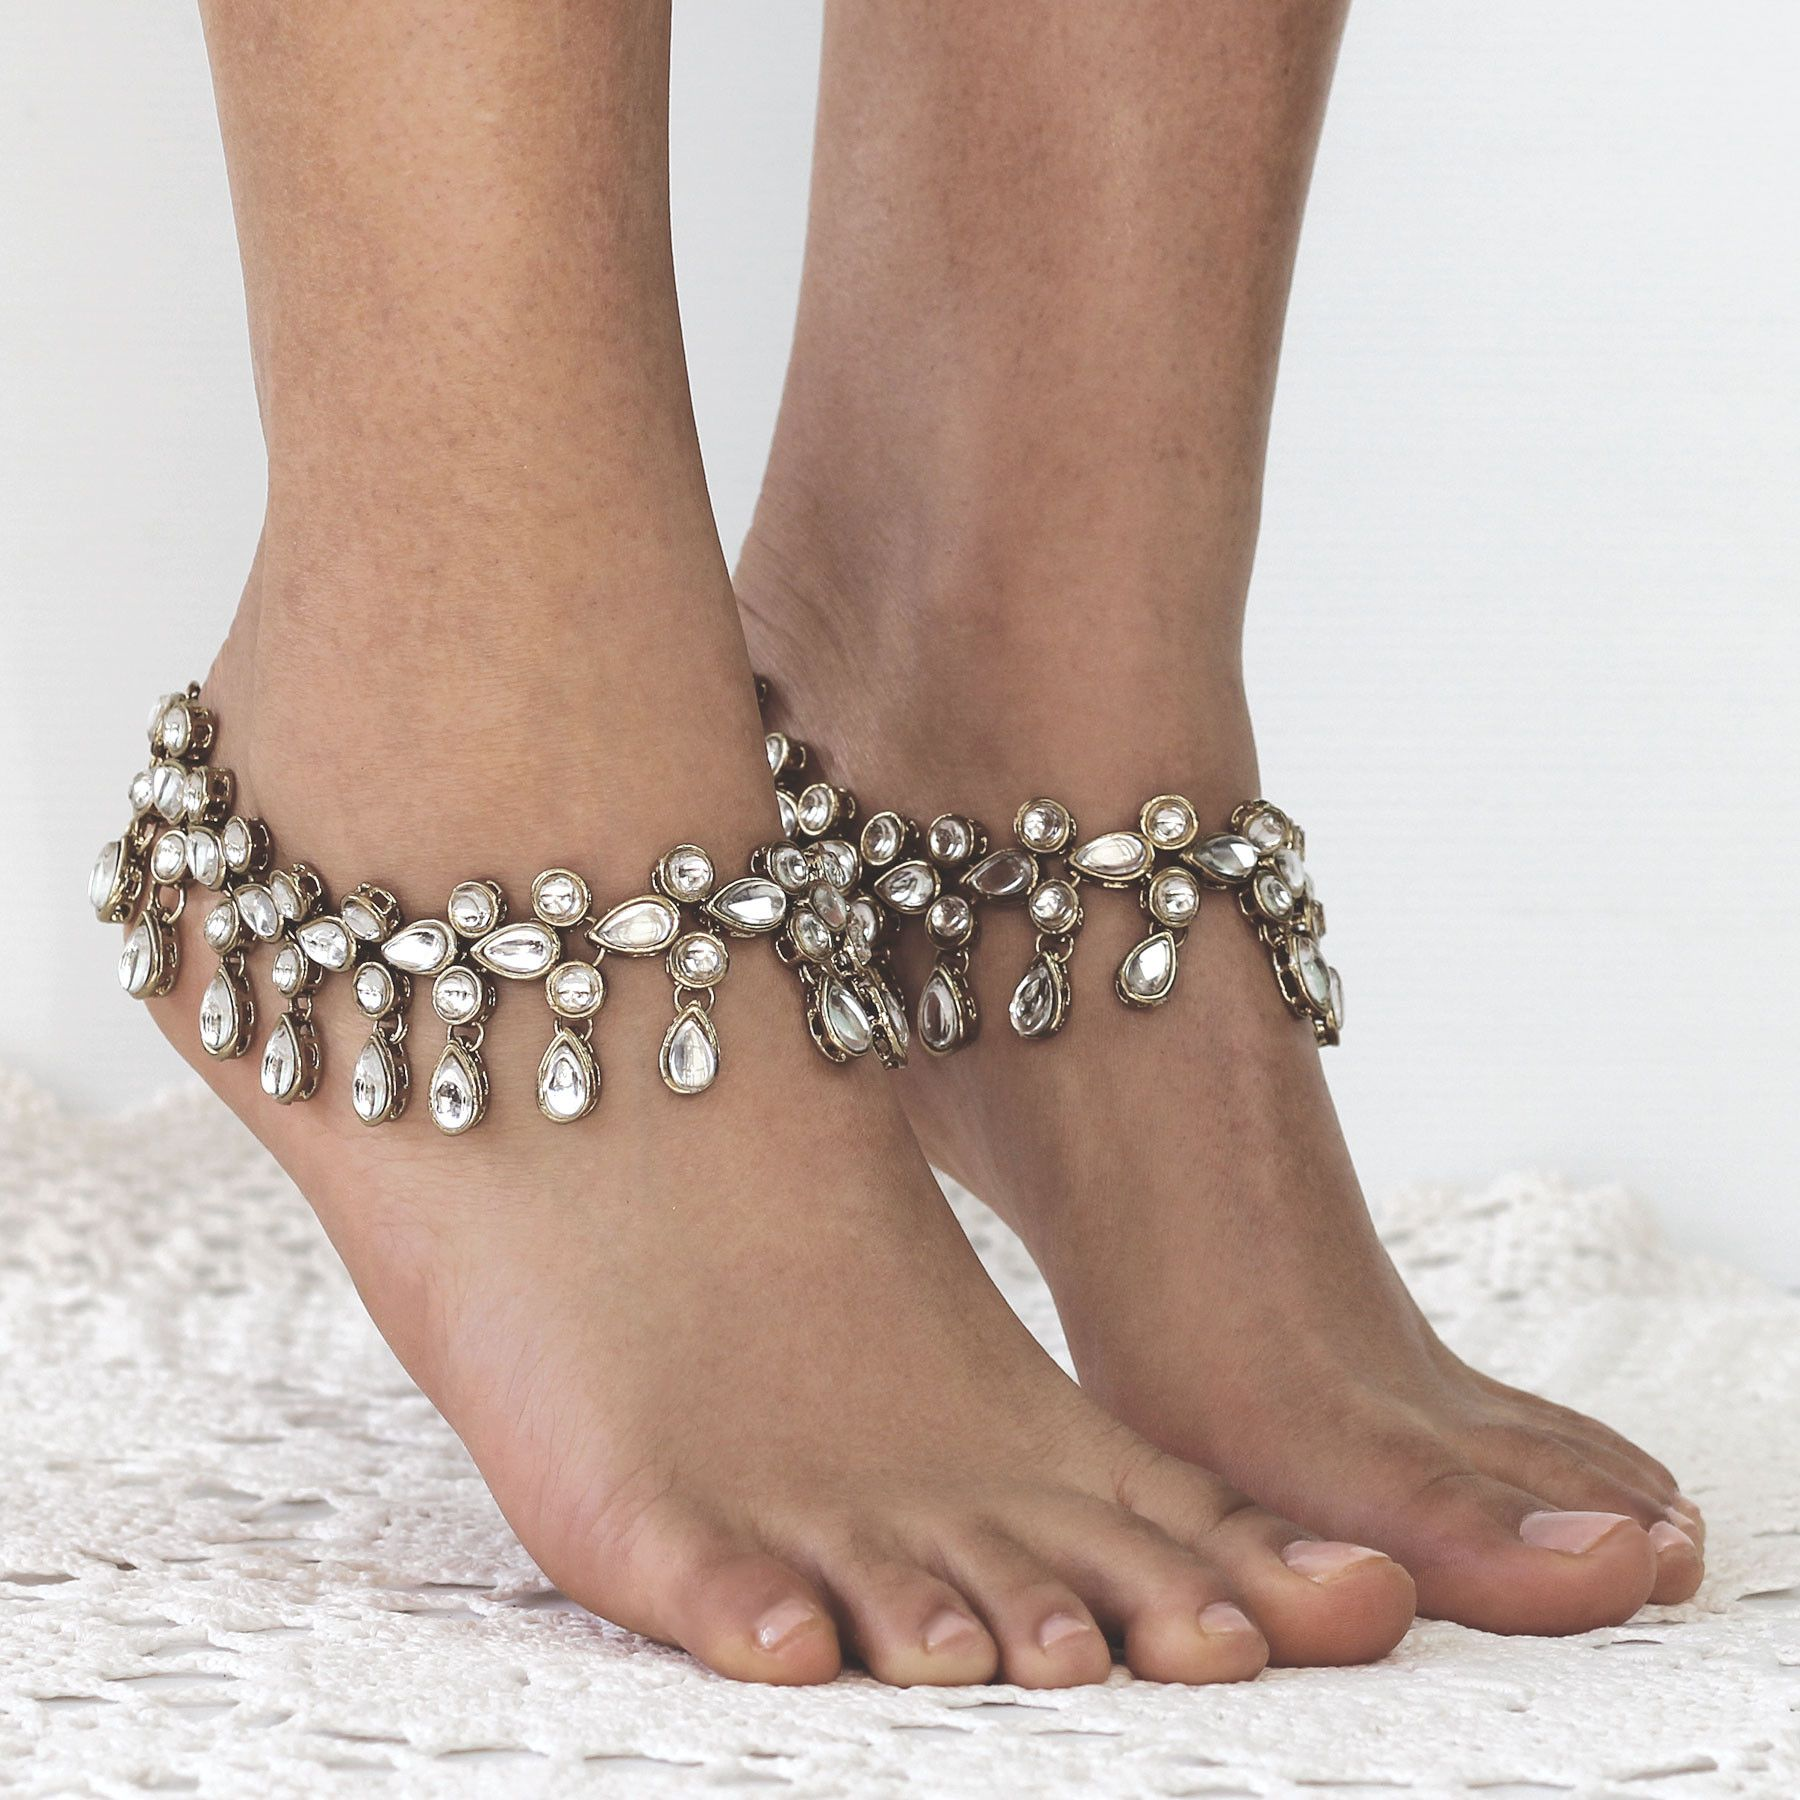 gift beads lyso plated bridal white bracelet product gold leg from chain vintage antique jewelry s exquisite flower feet tassel wedding women anklets anklet ankle beach